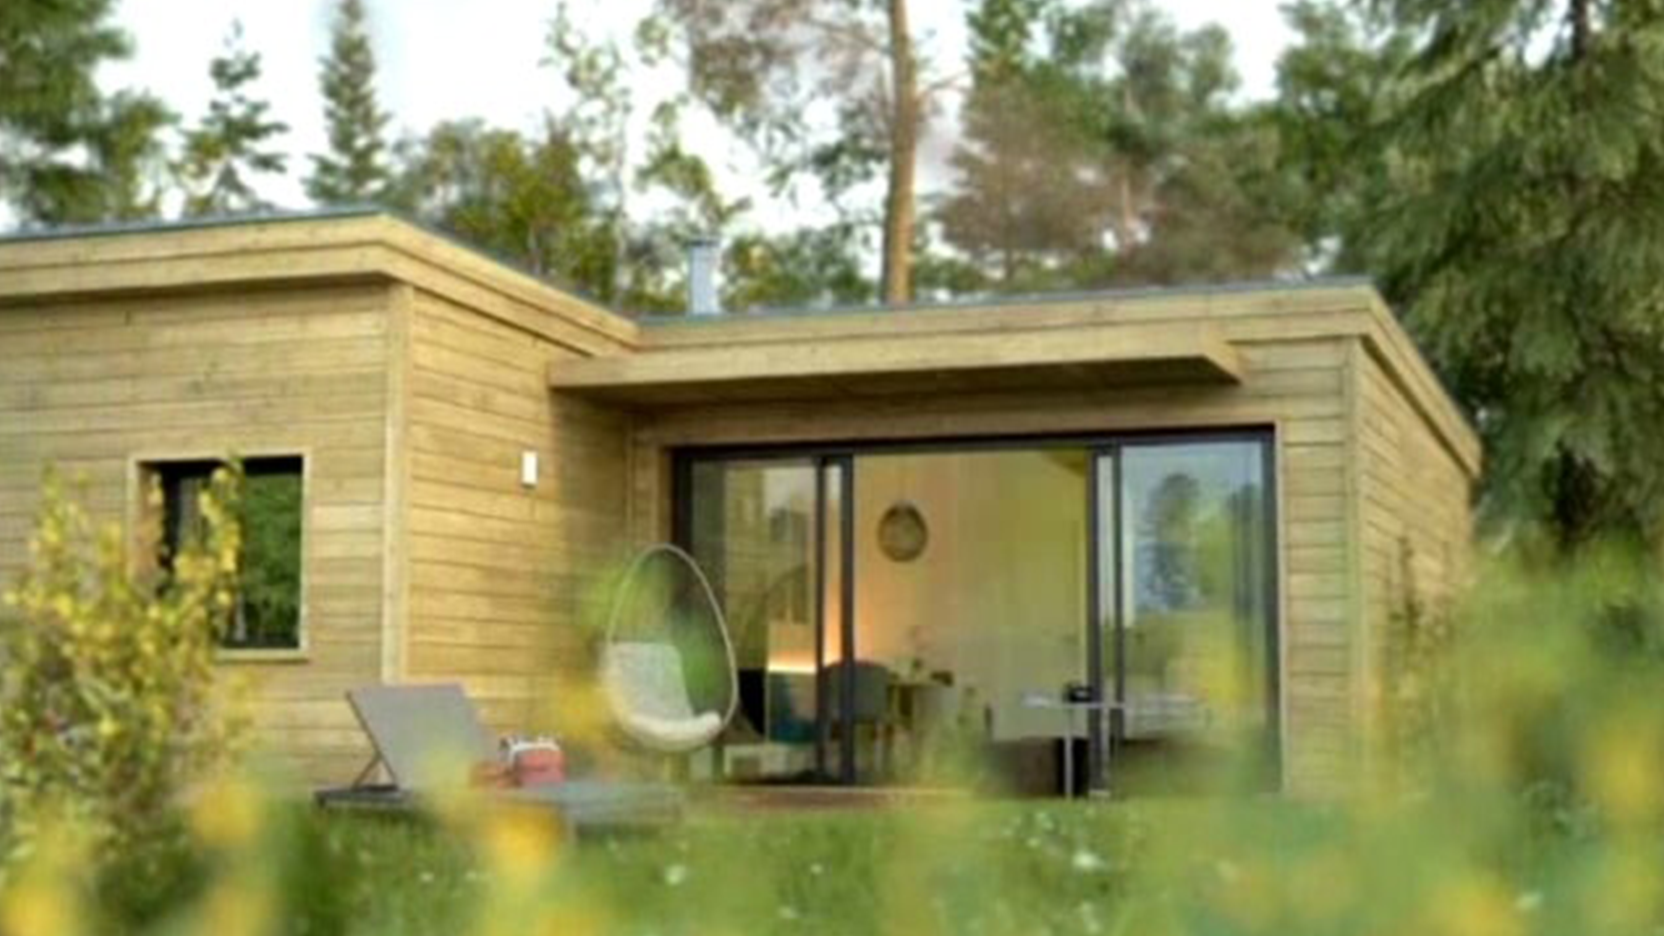 Levage des cottages du Center Parcs dans la Vienne